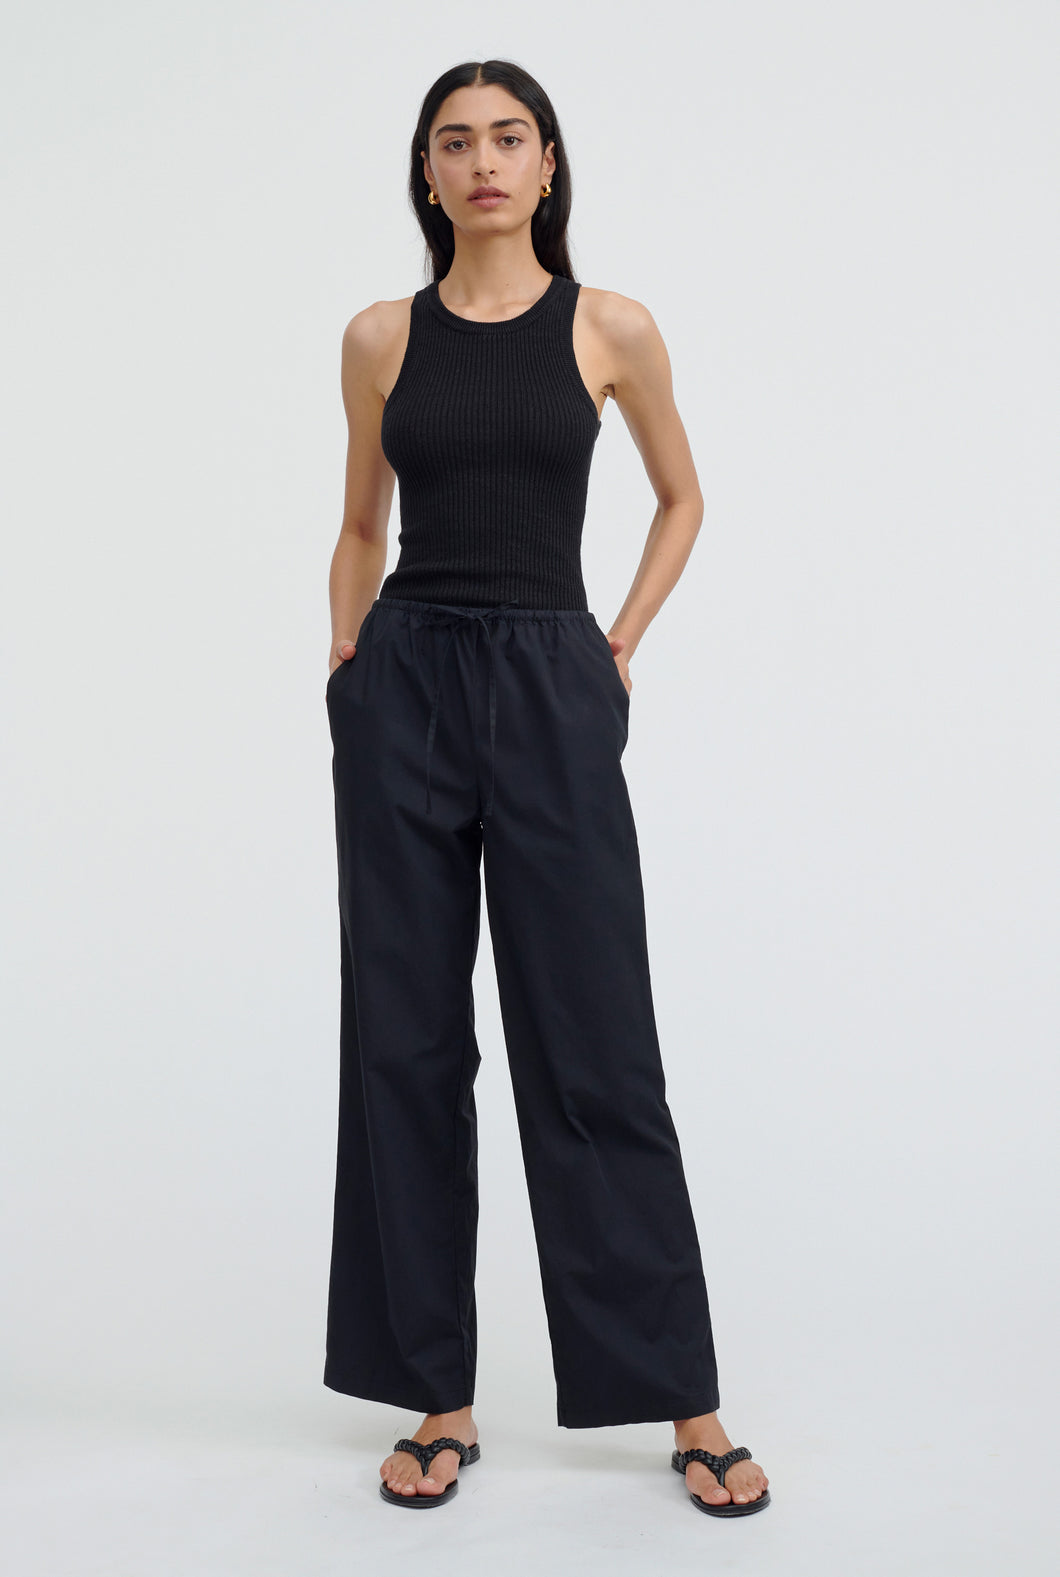 Cotton Drawstring Pant - Black